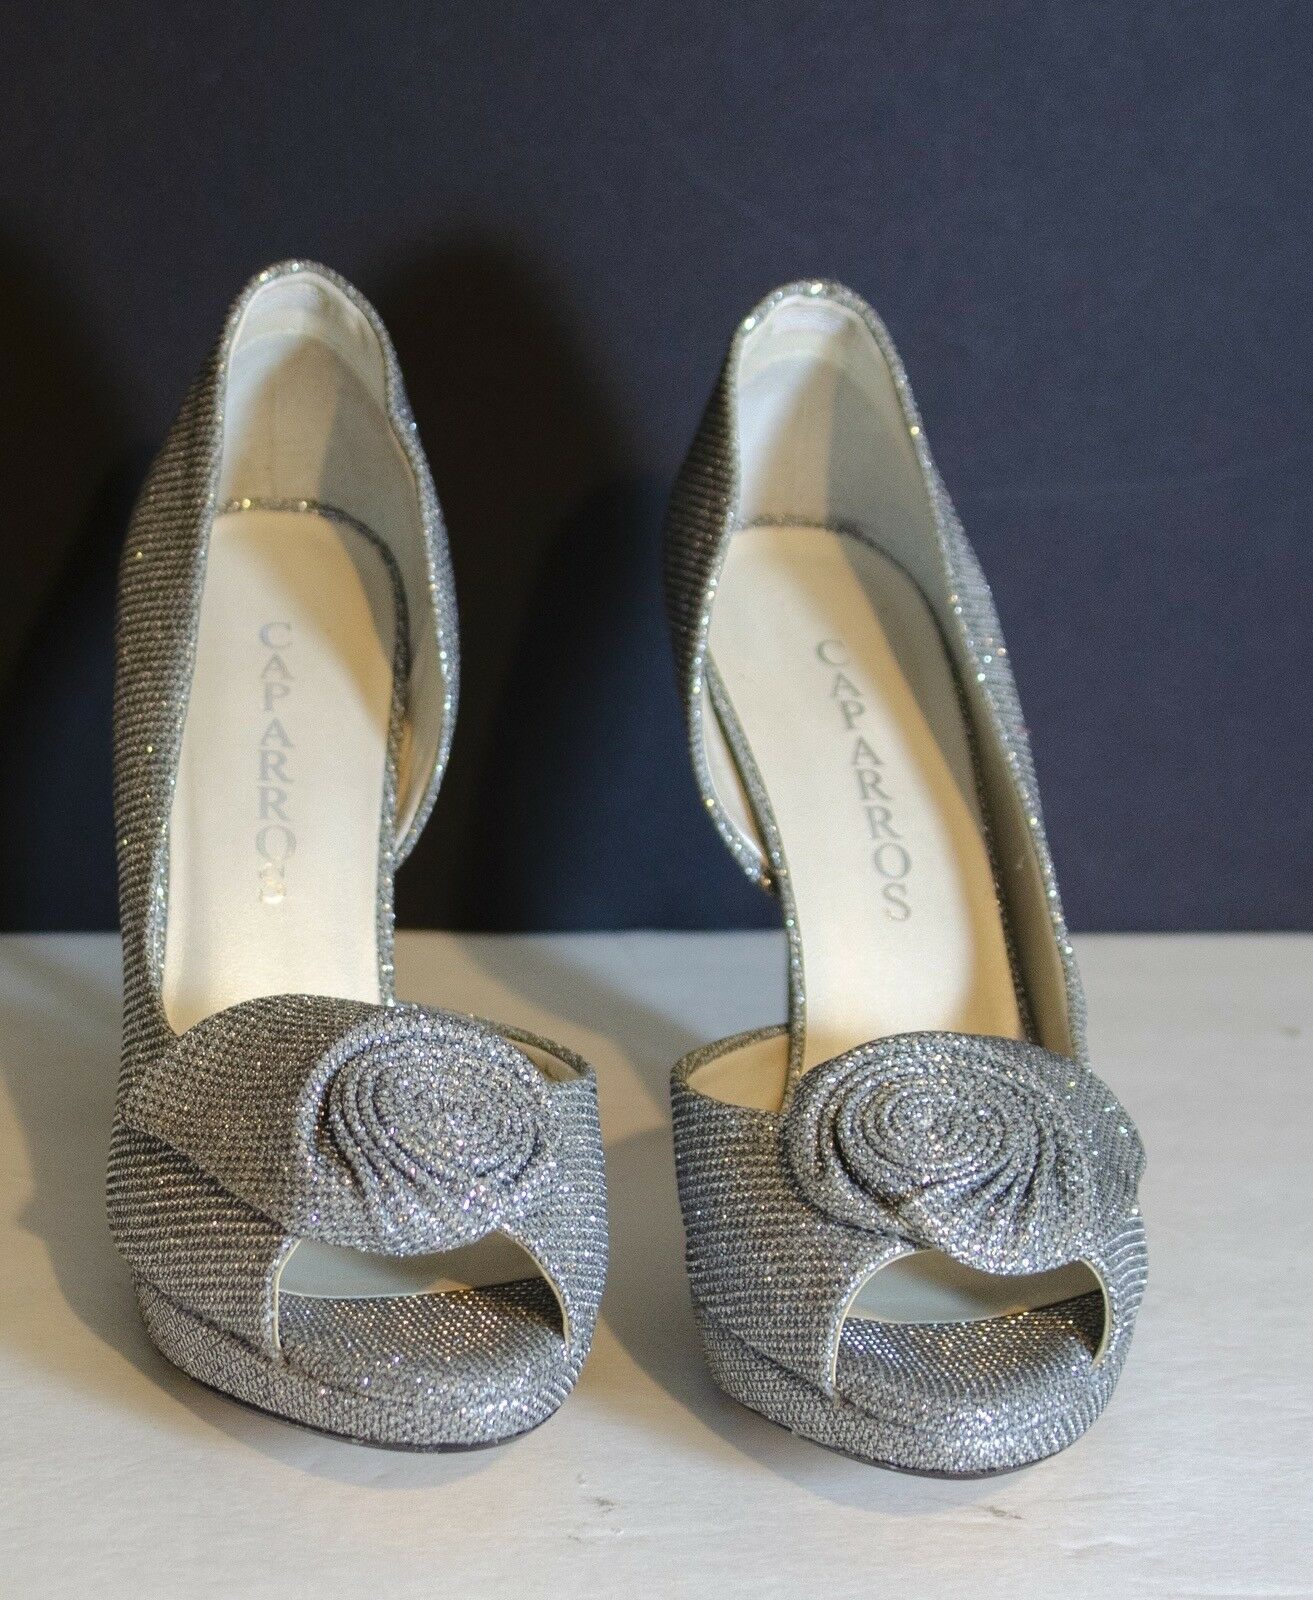 Caparros Women's Baldwin Dress Silver Sparkle Platform Pumps Size8M